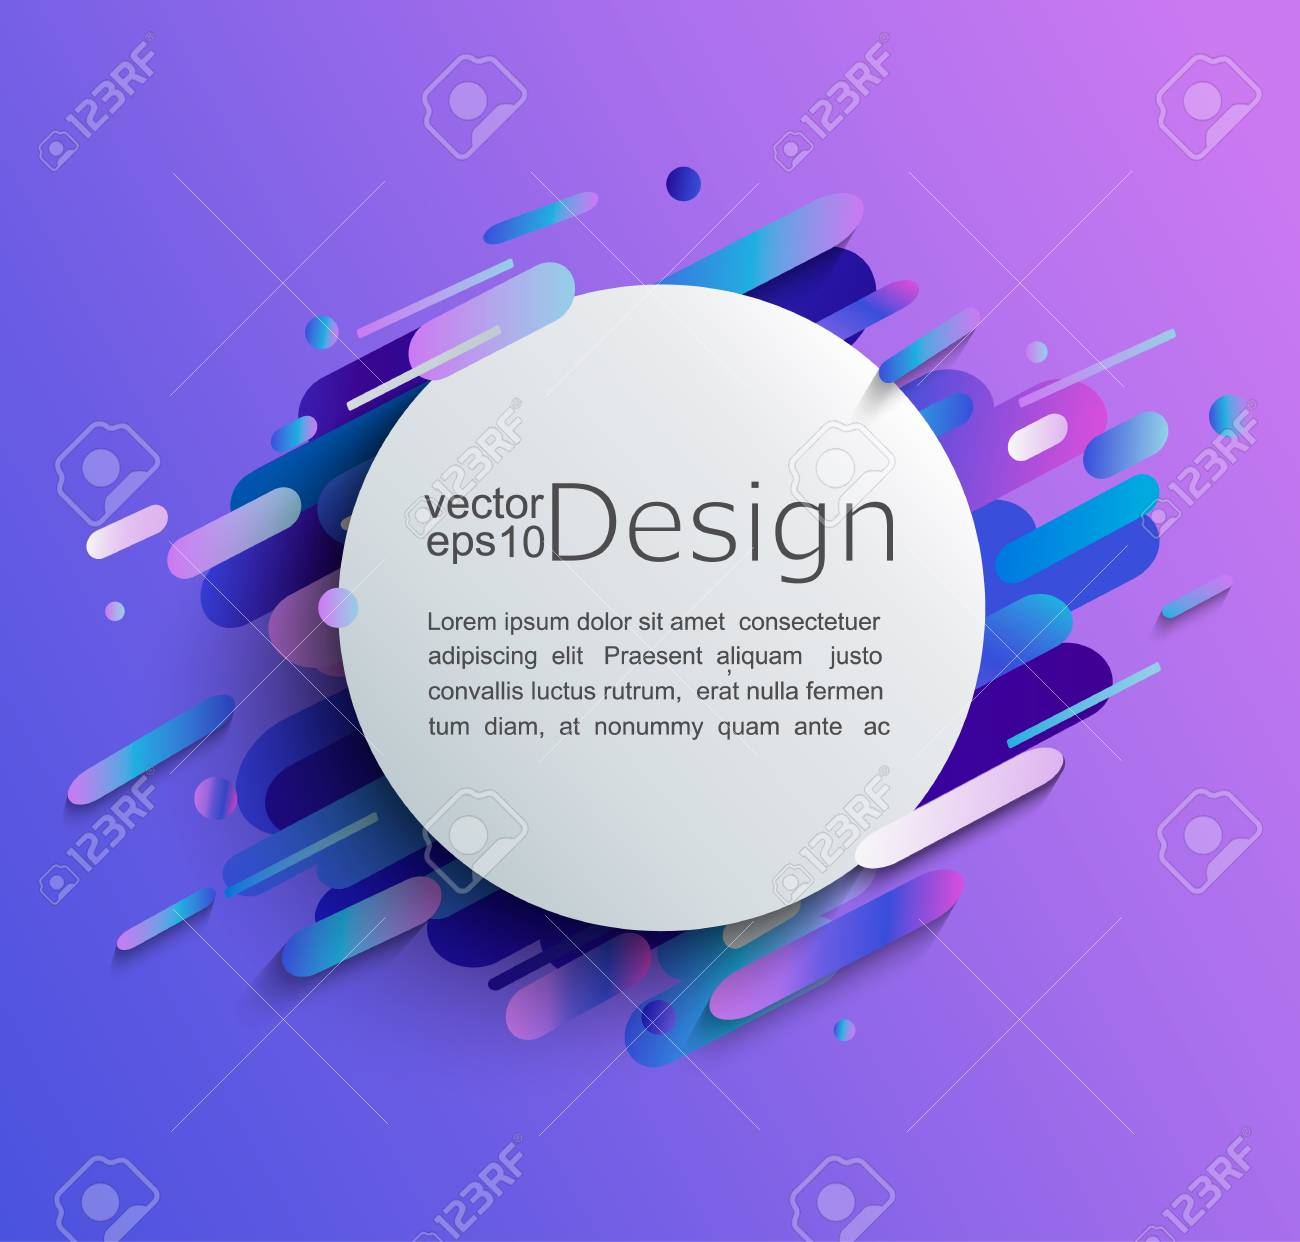 Circle frame with dynamic rounded shapes on modern and abstract gradient background. Vector illustration. - 107542888